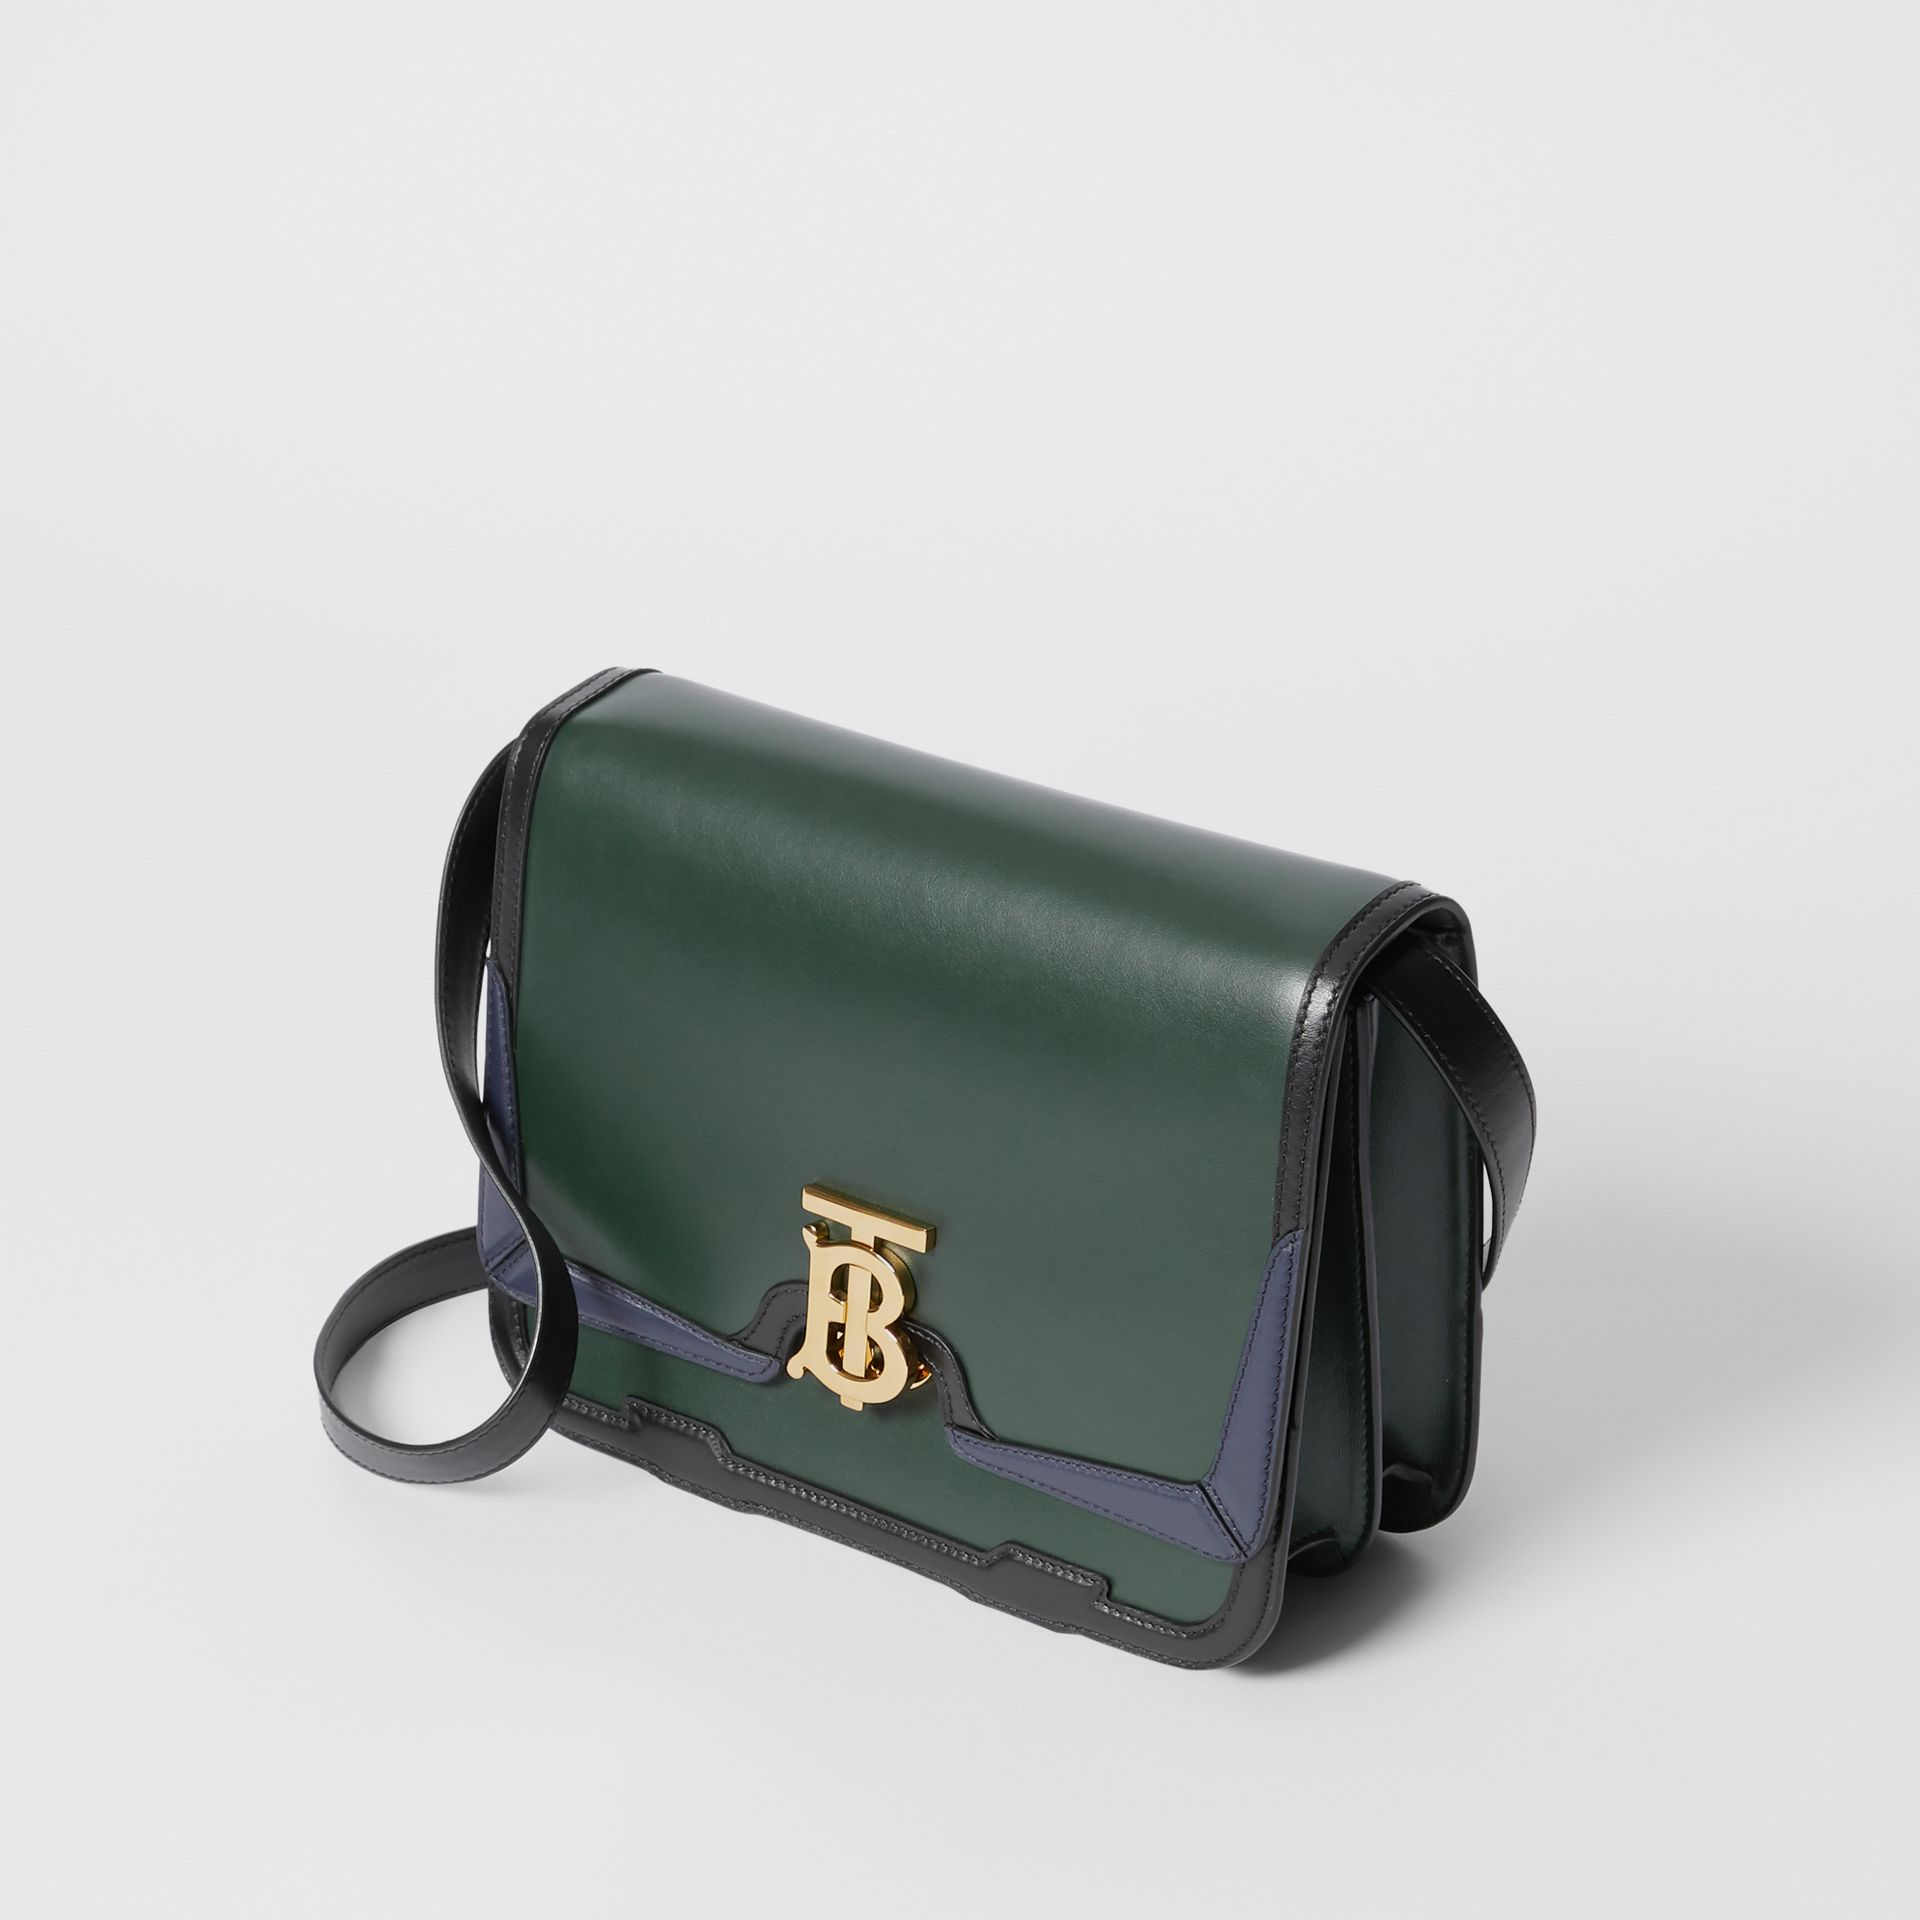 Medium Appliqué Leather TB Bag in Dark Pine Green - Women | Burberry United Kingdom - gallery image 2